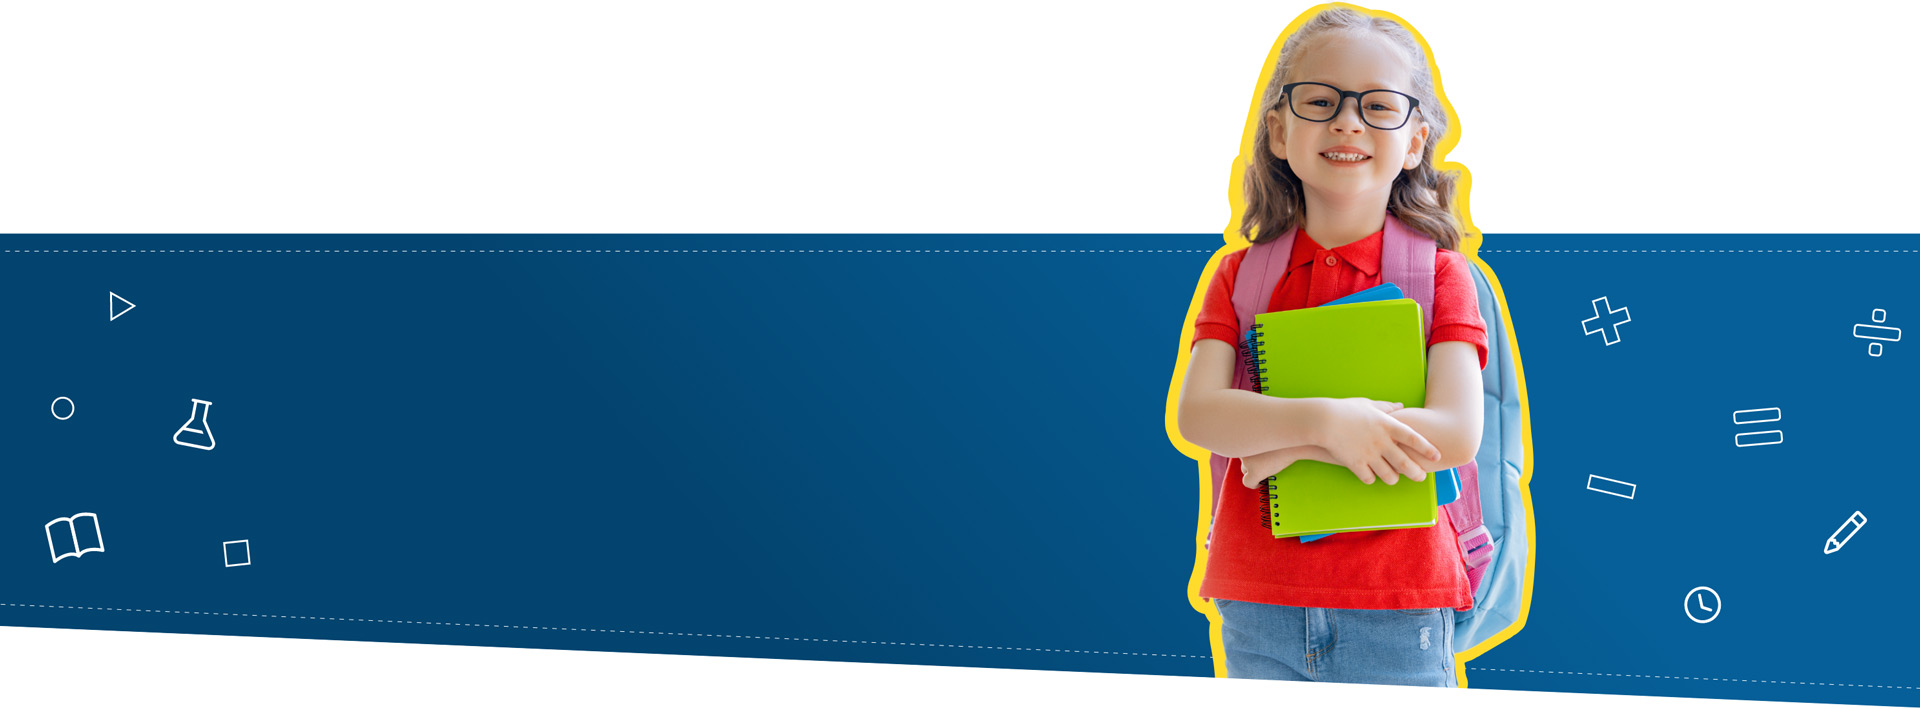 Little girl with glasses and backpack holding notebooks